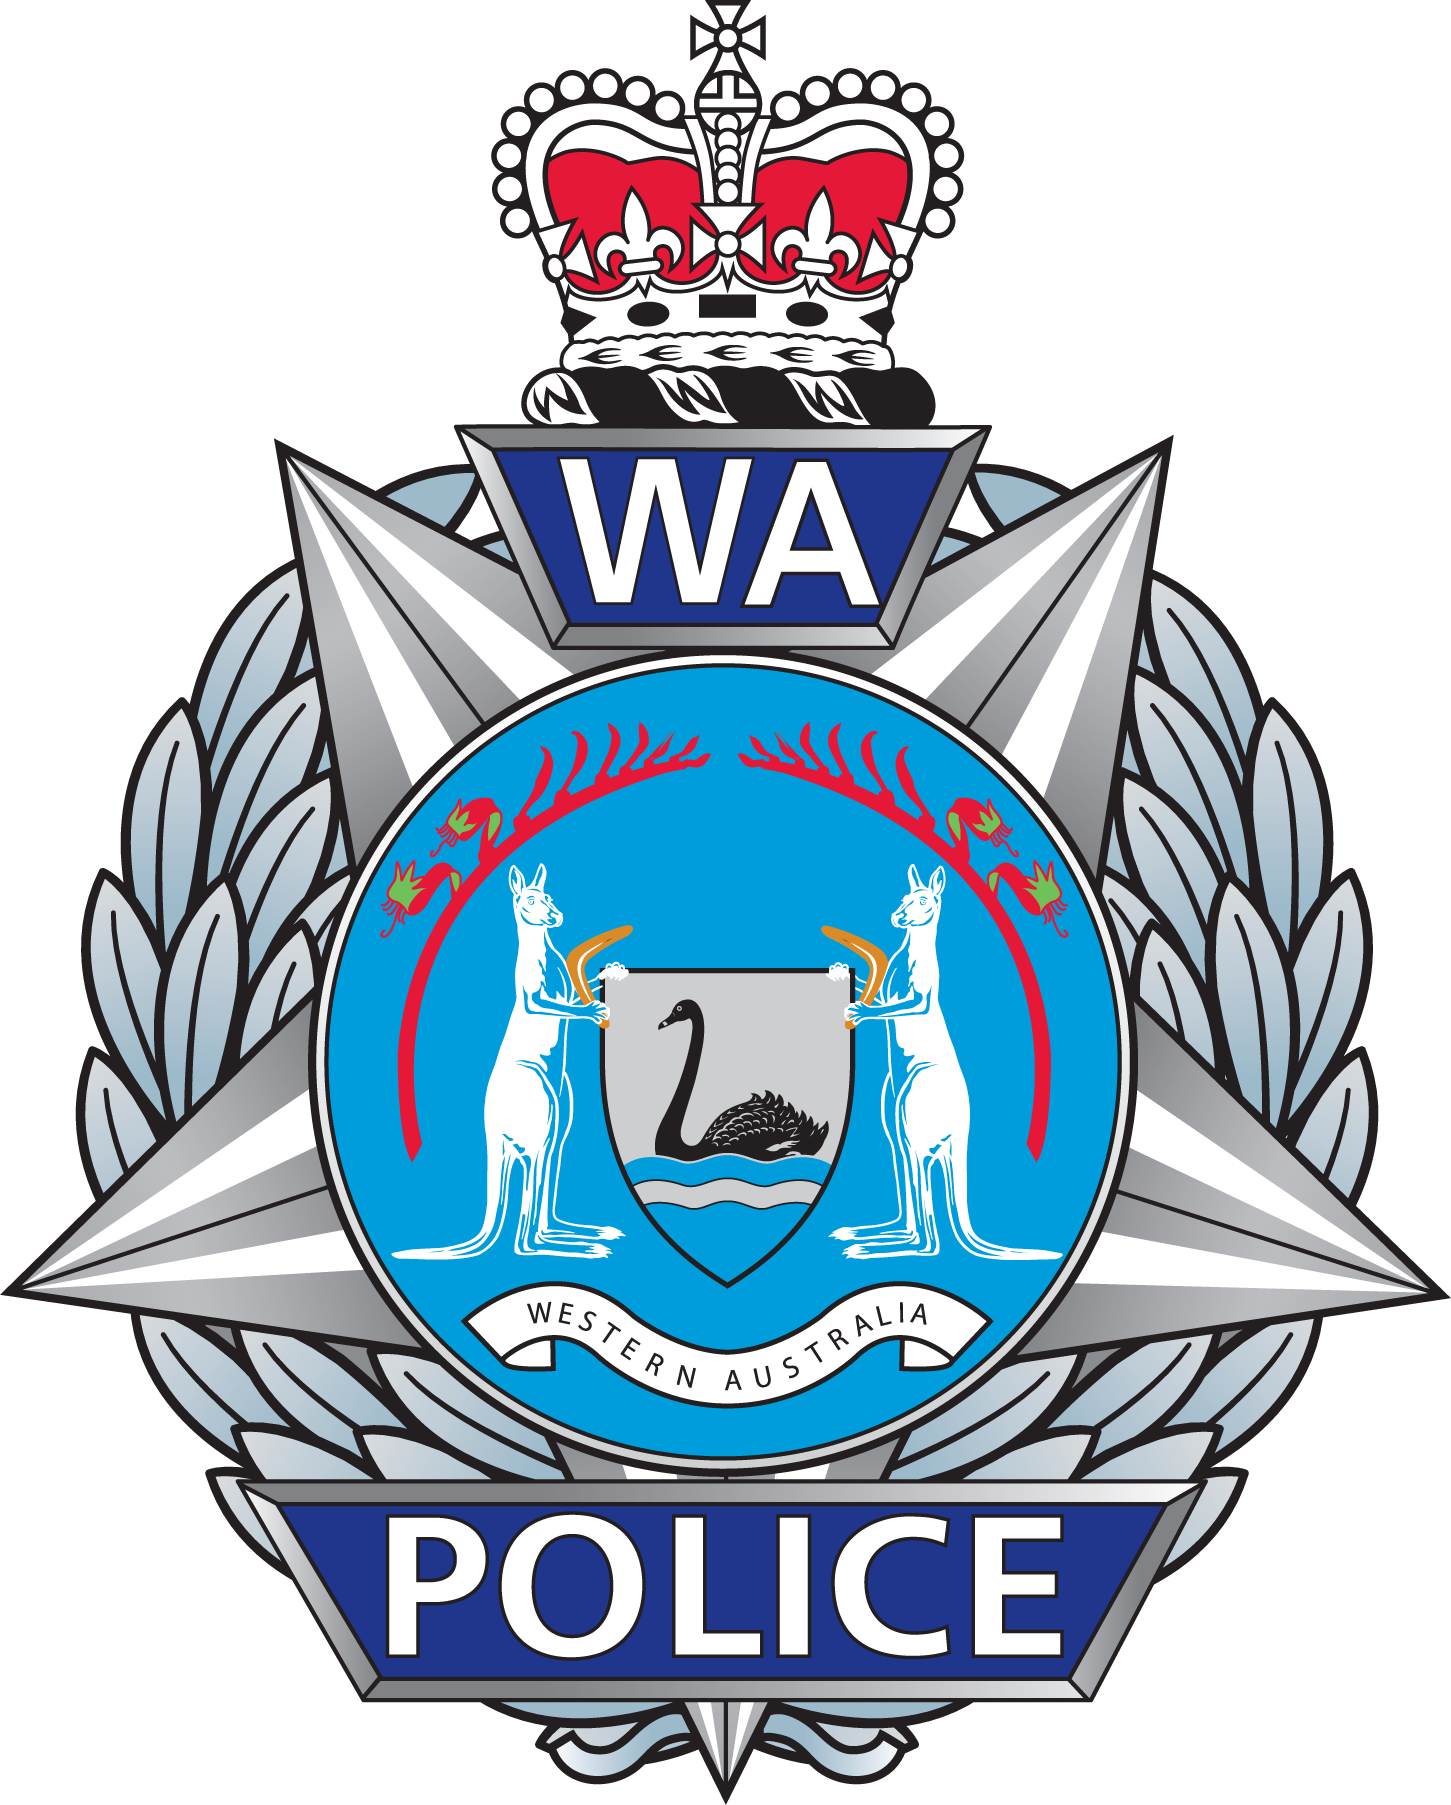 https://positivepathways.org.au/wp-content/uploads/2015/03/WA-Police_Logo-e1485837469787.png